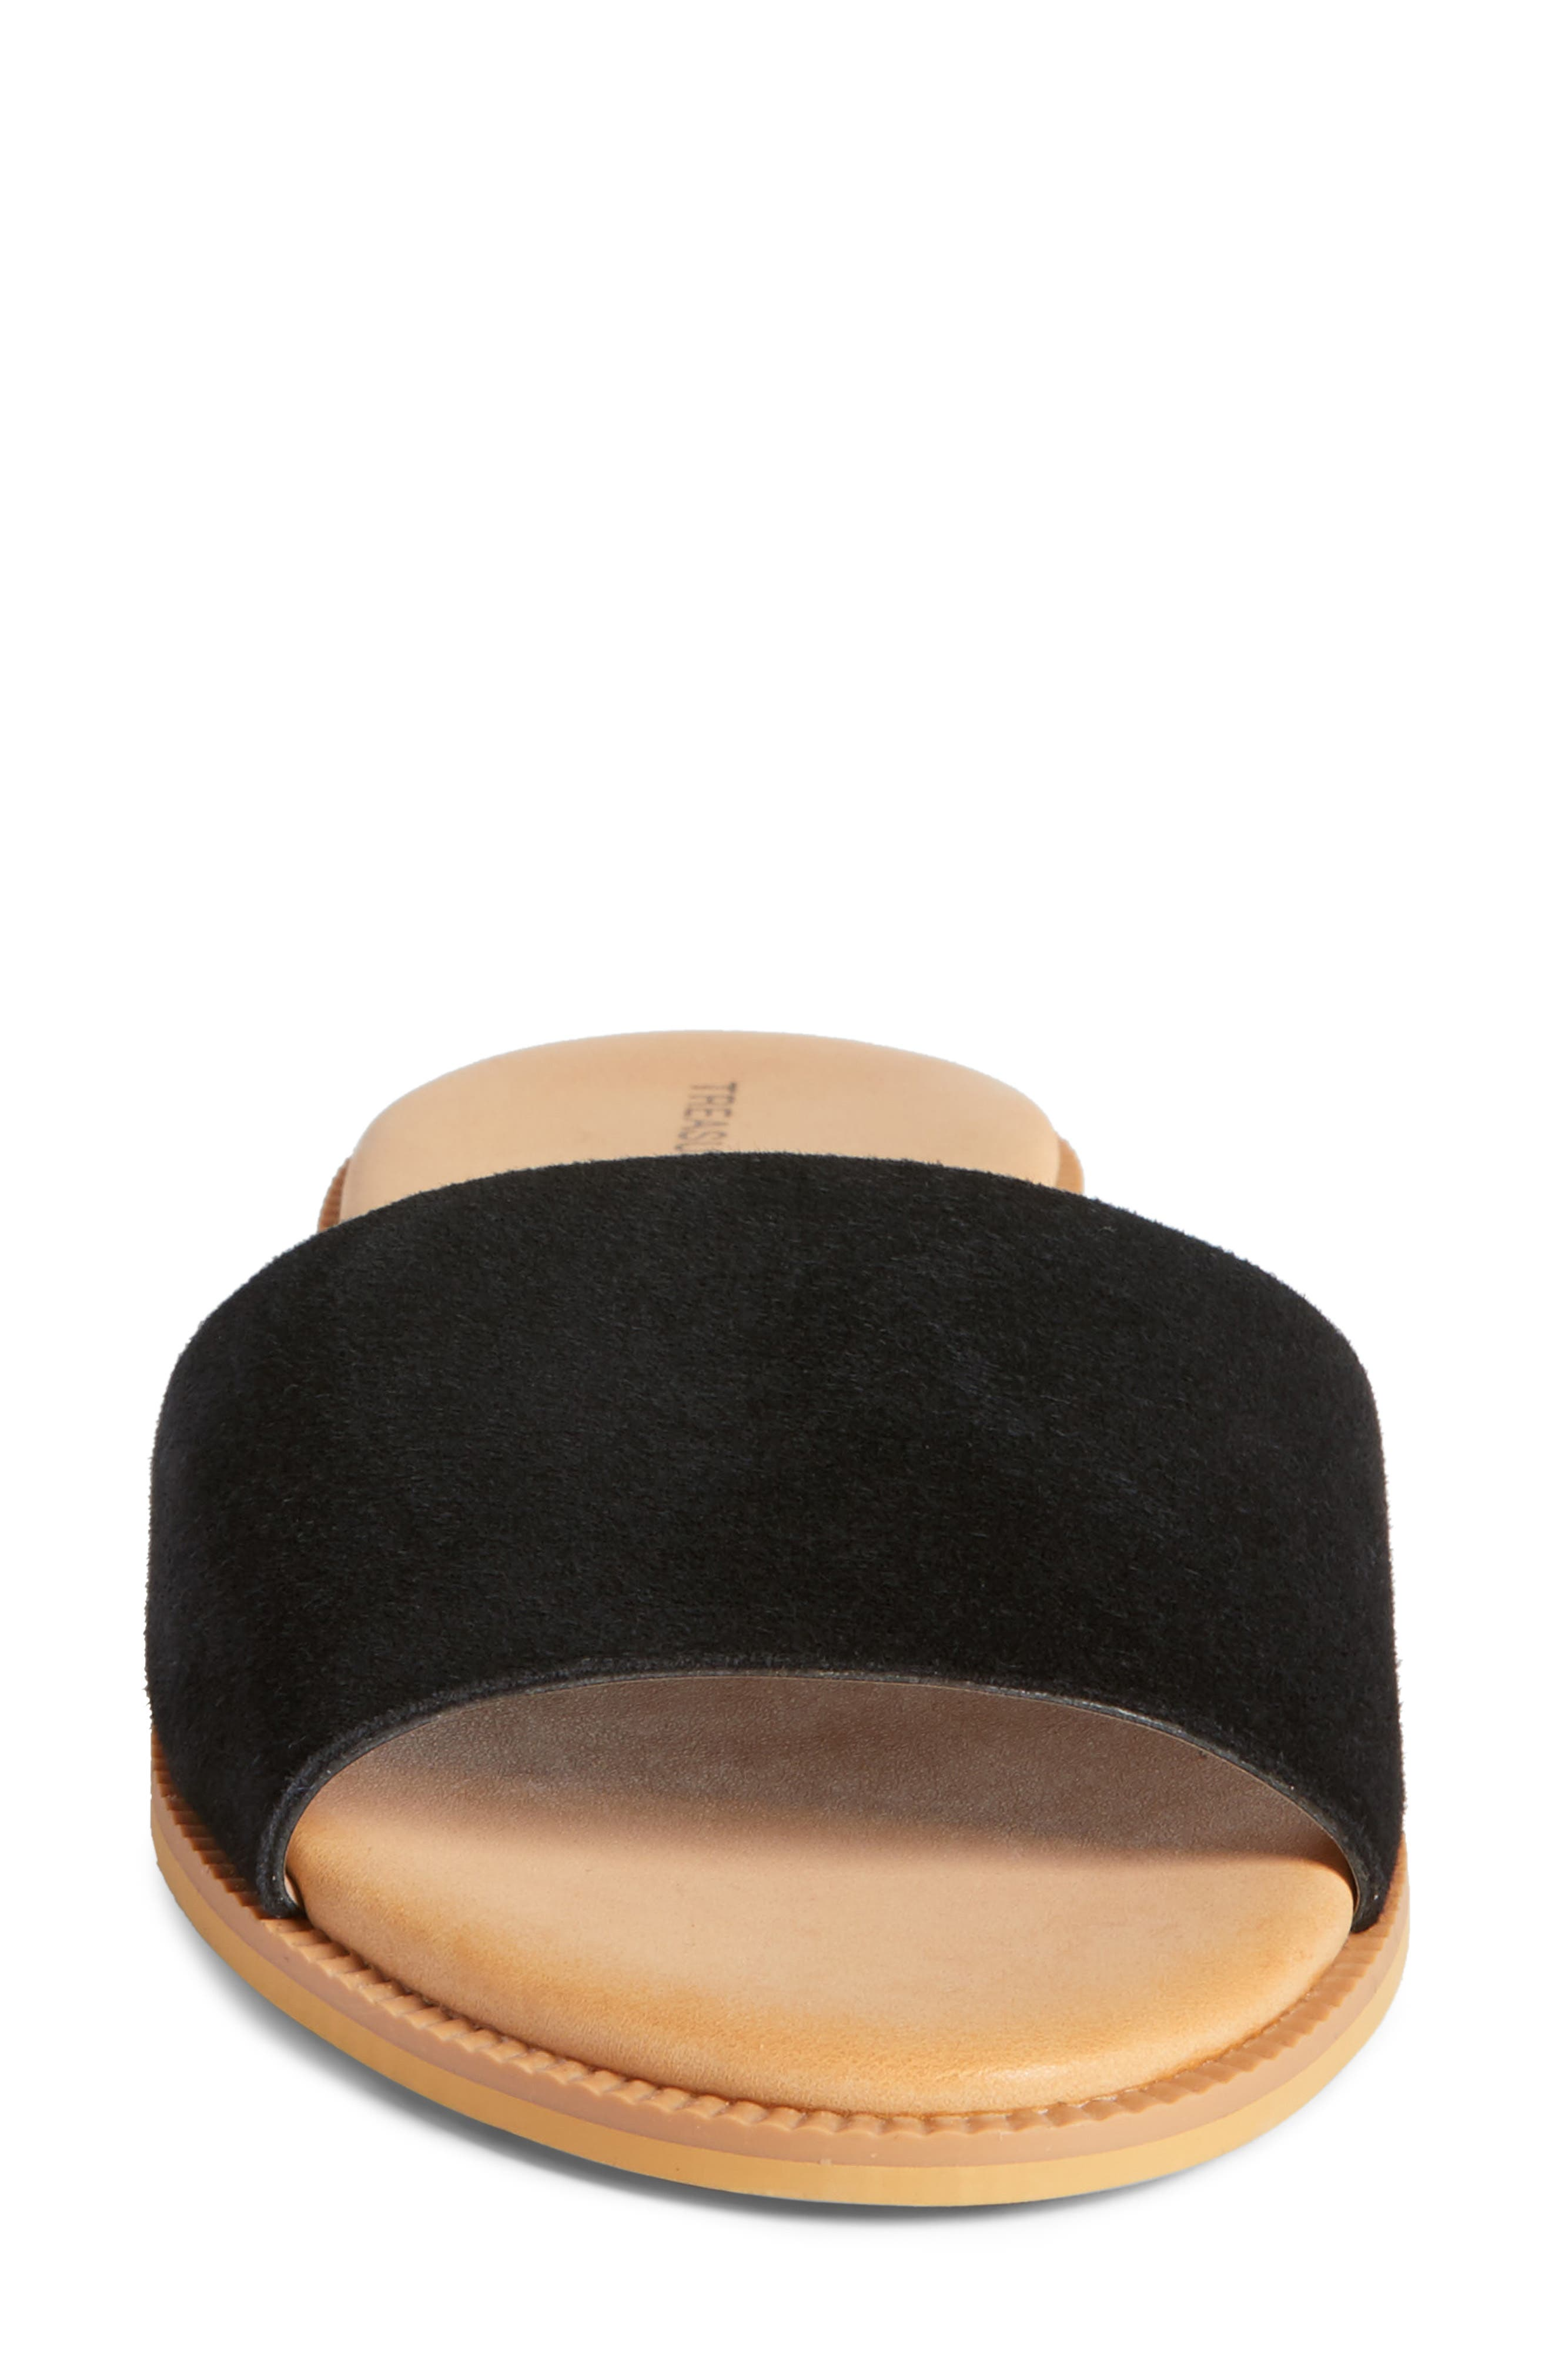 Mere Flat Slide Sandal,                             Alternate thumbnail 4, color,                             Black Suede